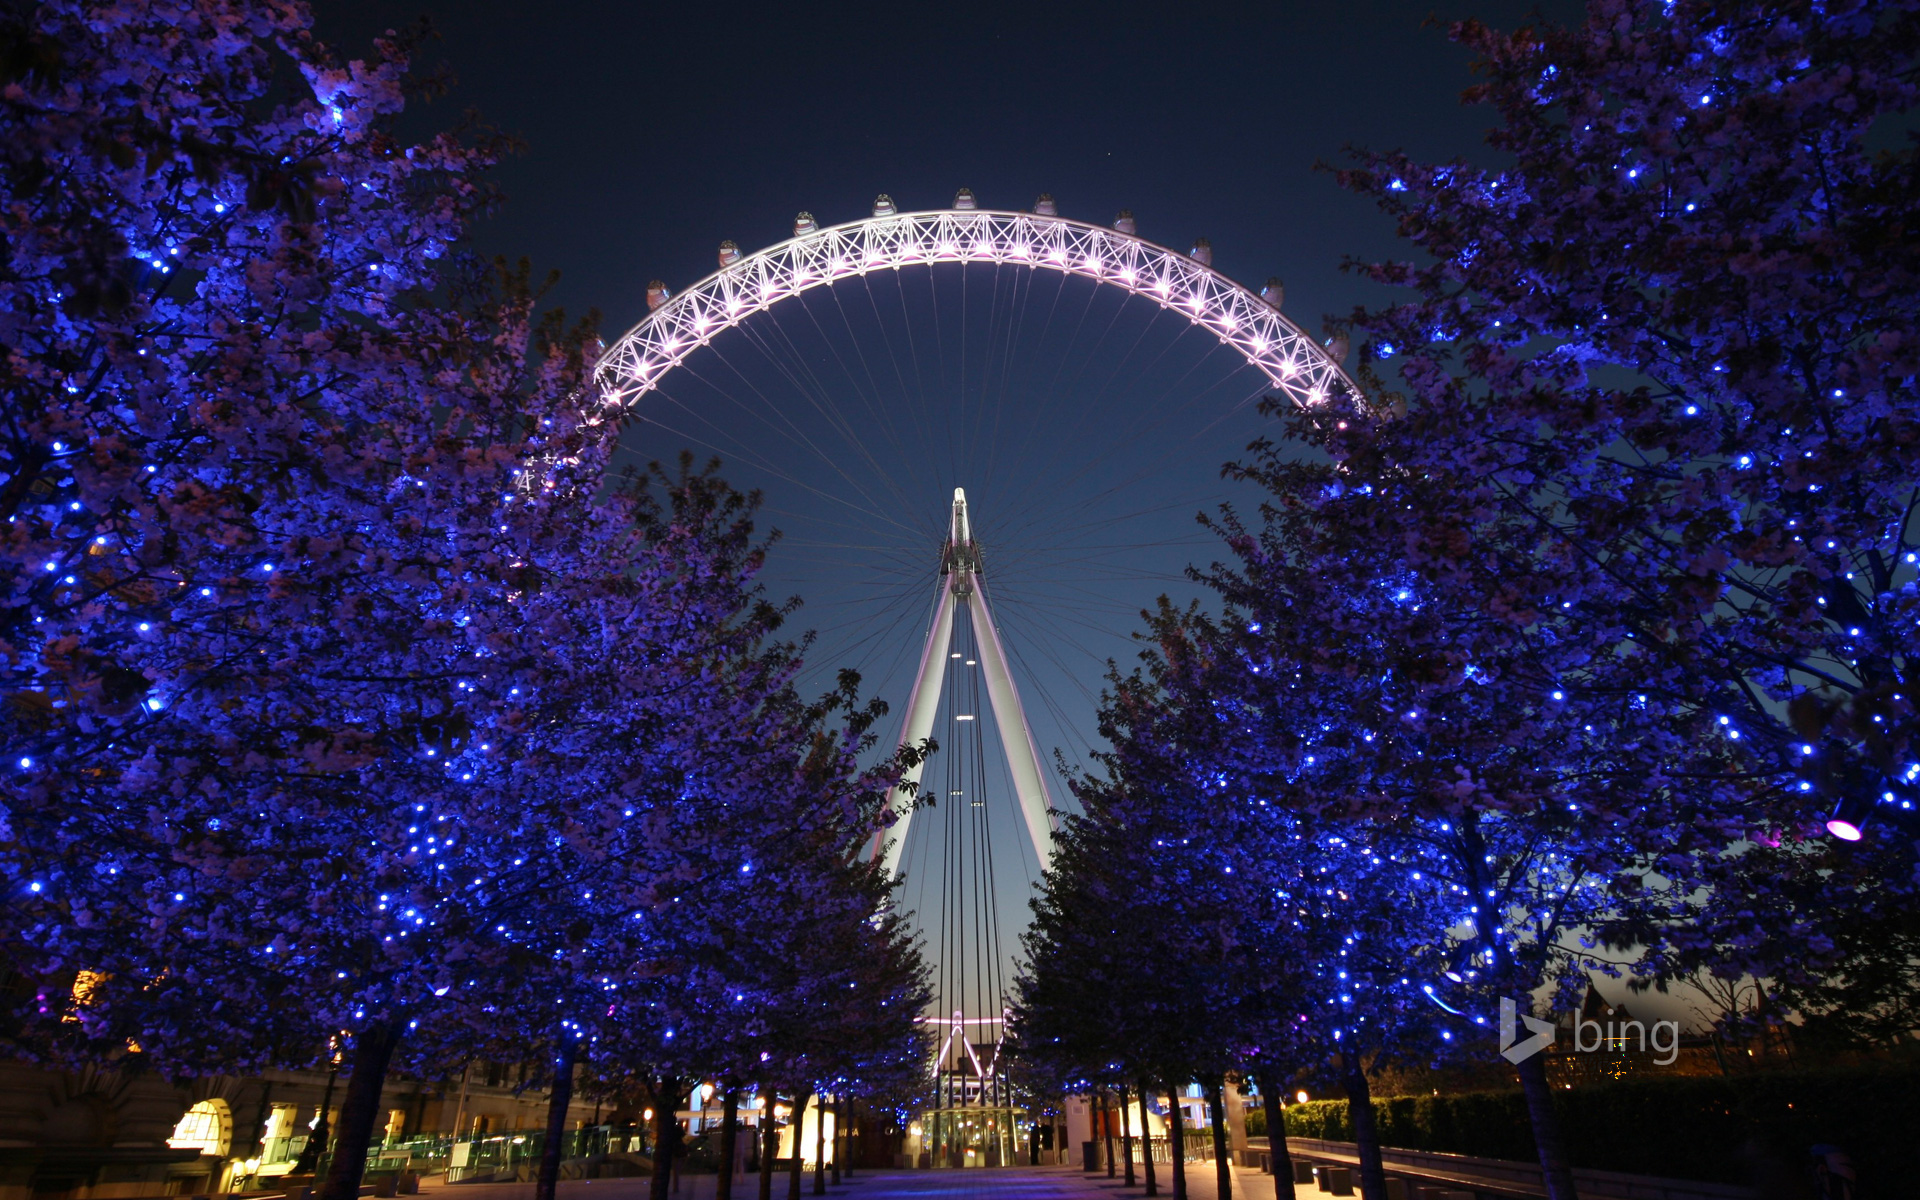 The London Eye at night behind a row of illuminated trees